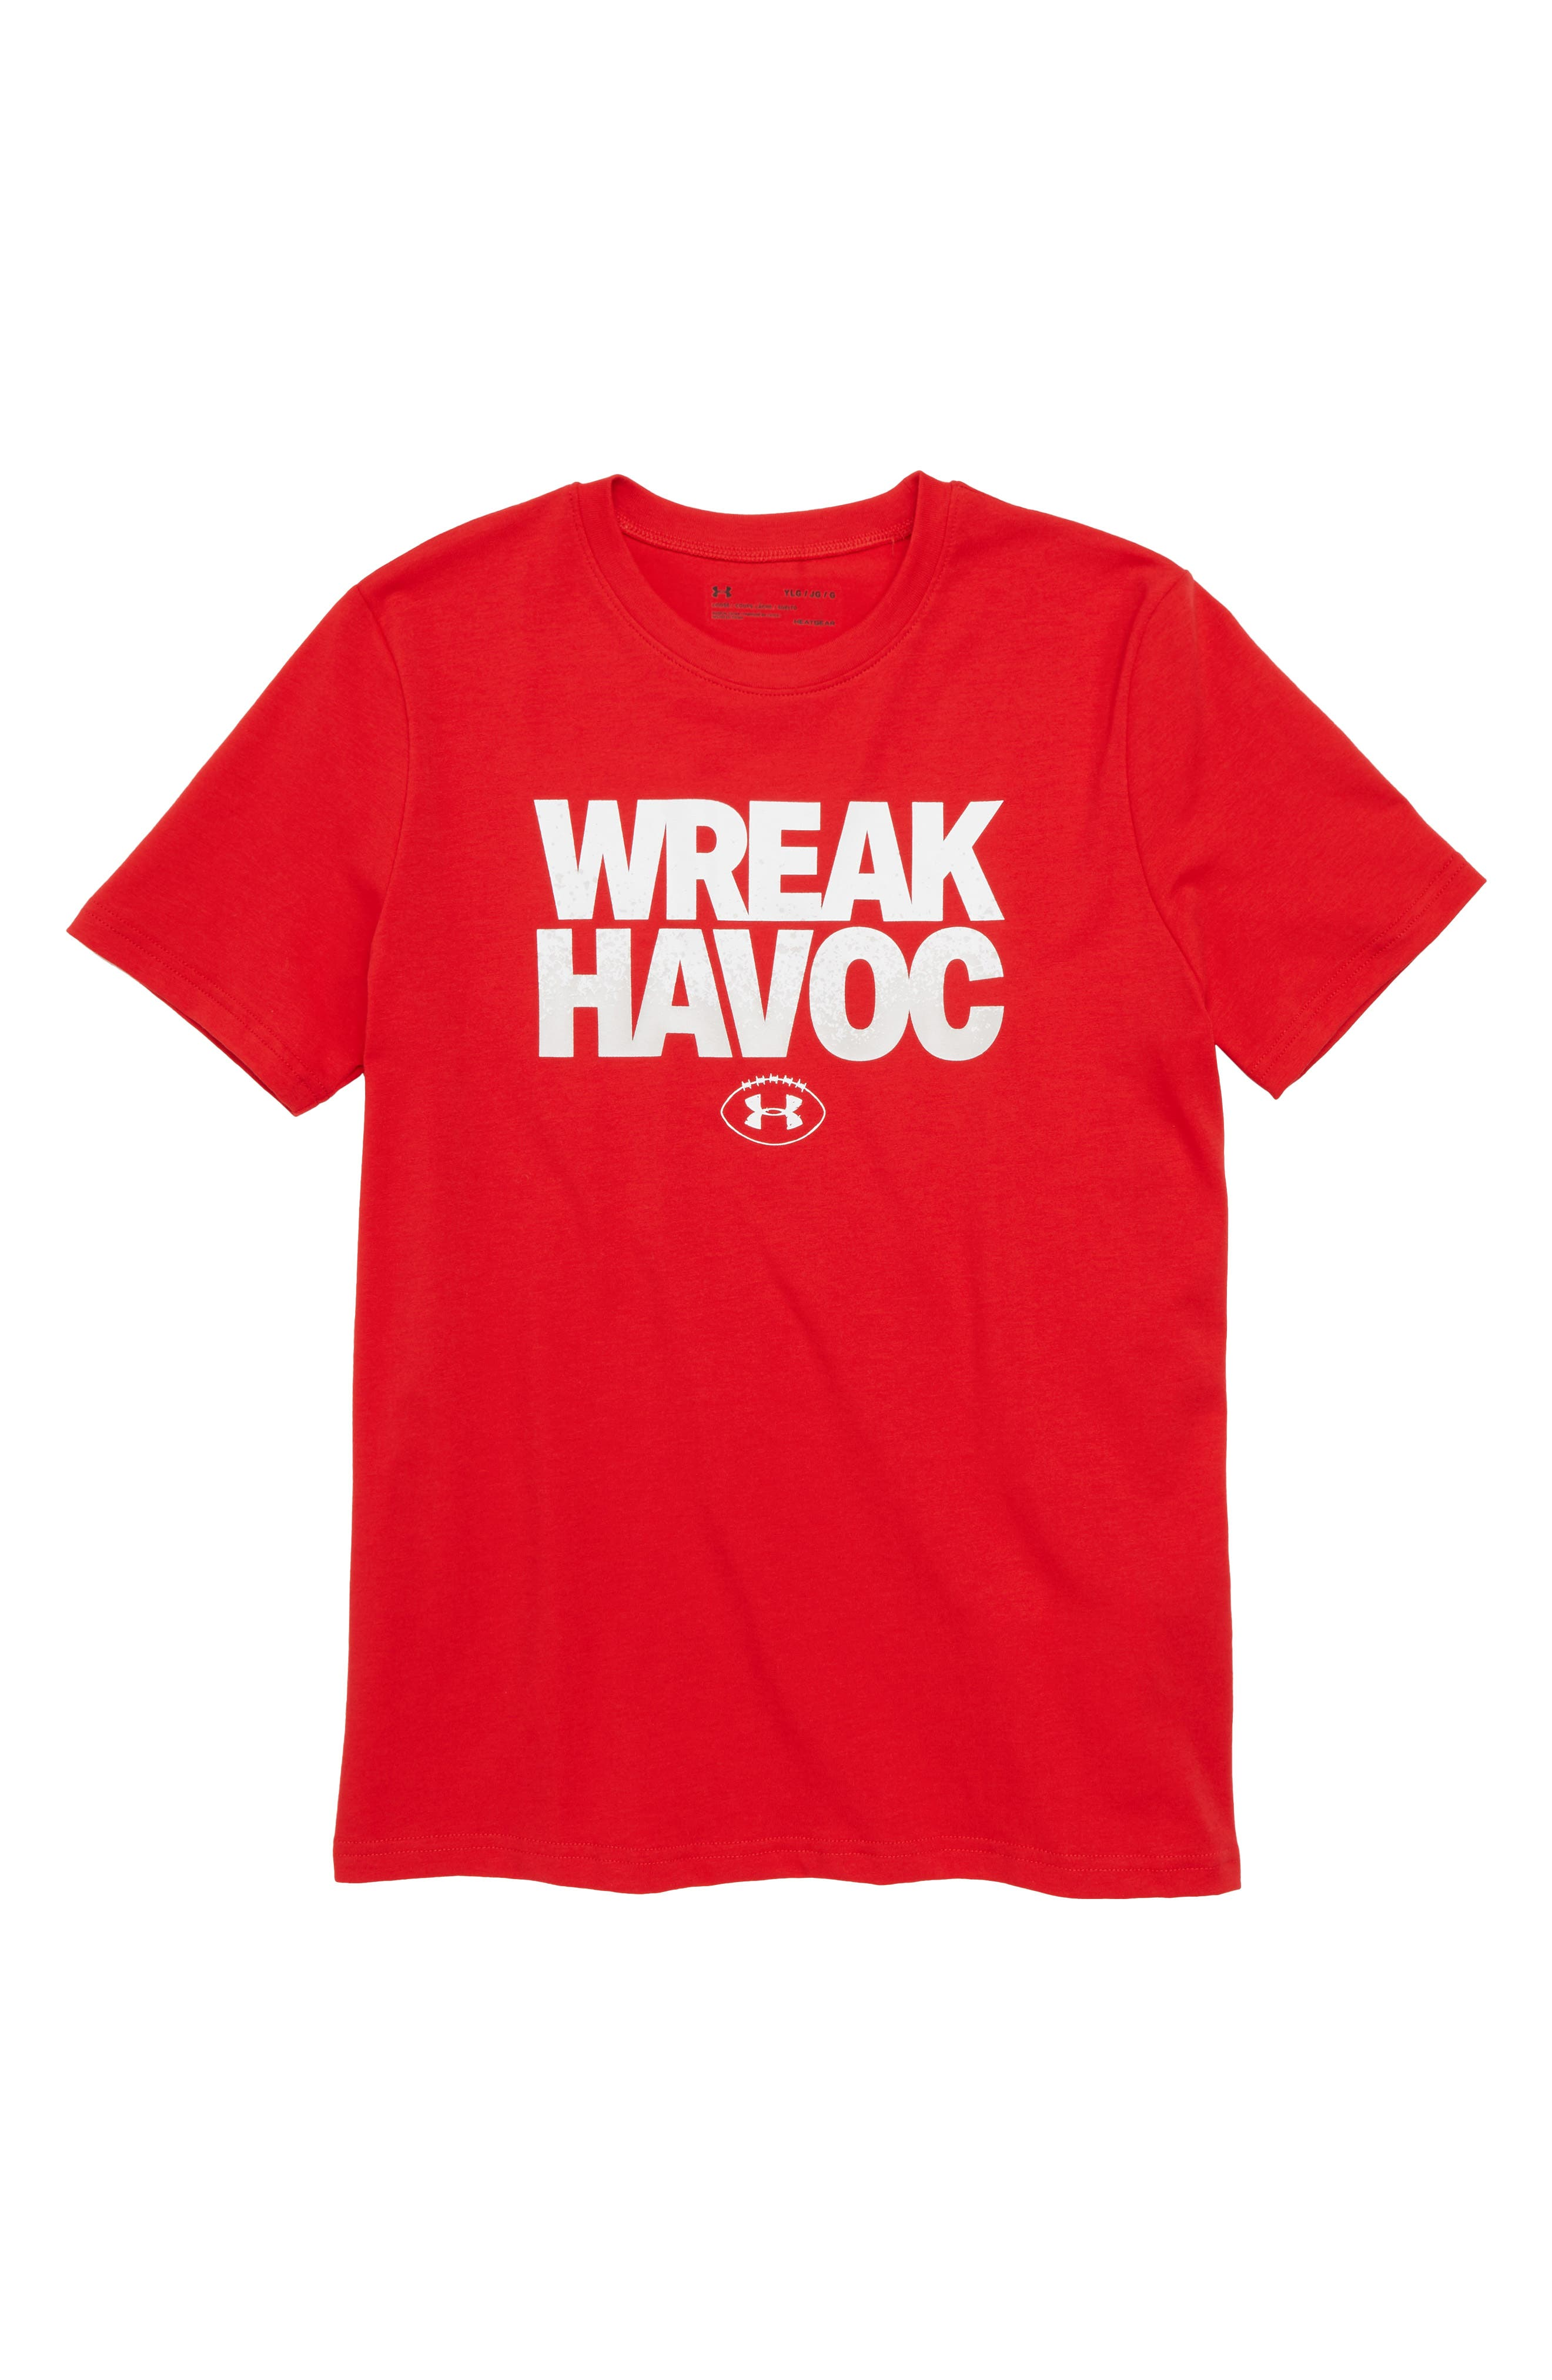 Wreak Havoc Graphic T-Shirt,                         Main,                         color, Red/ White